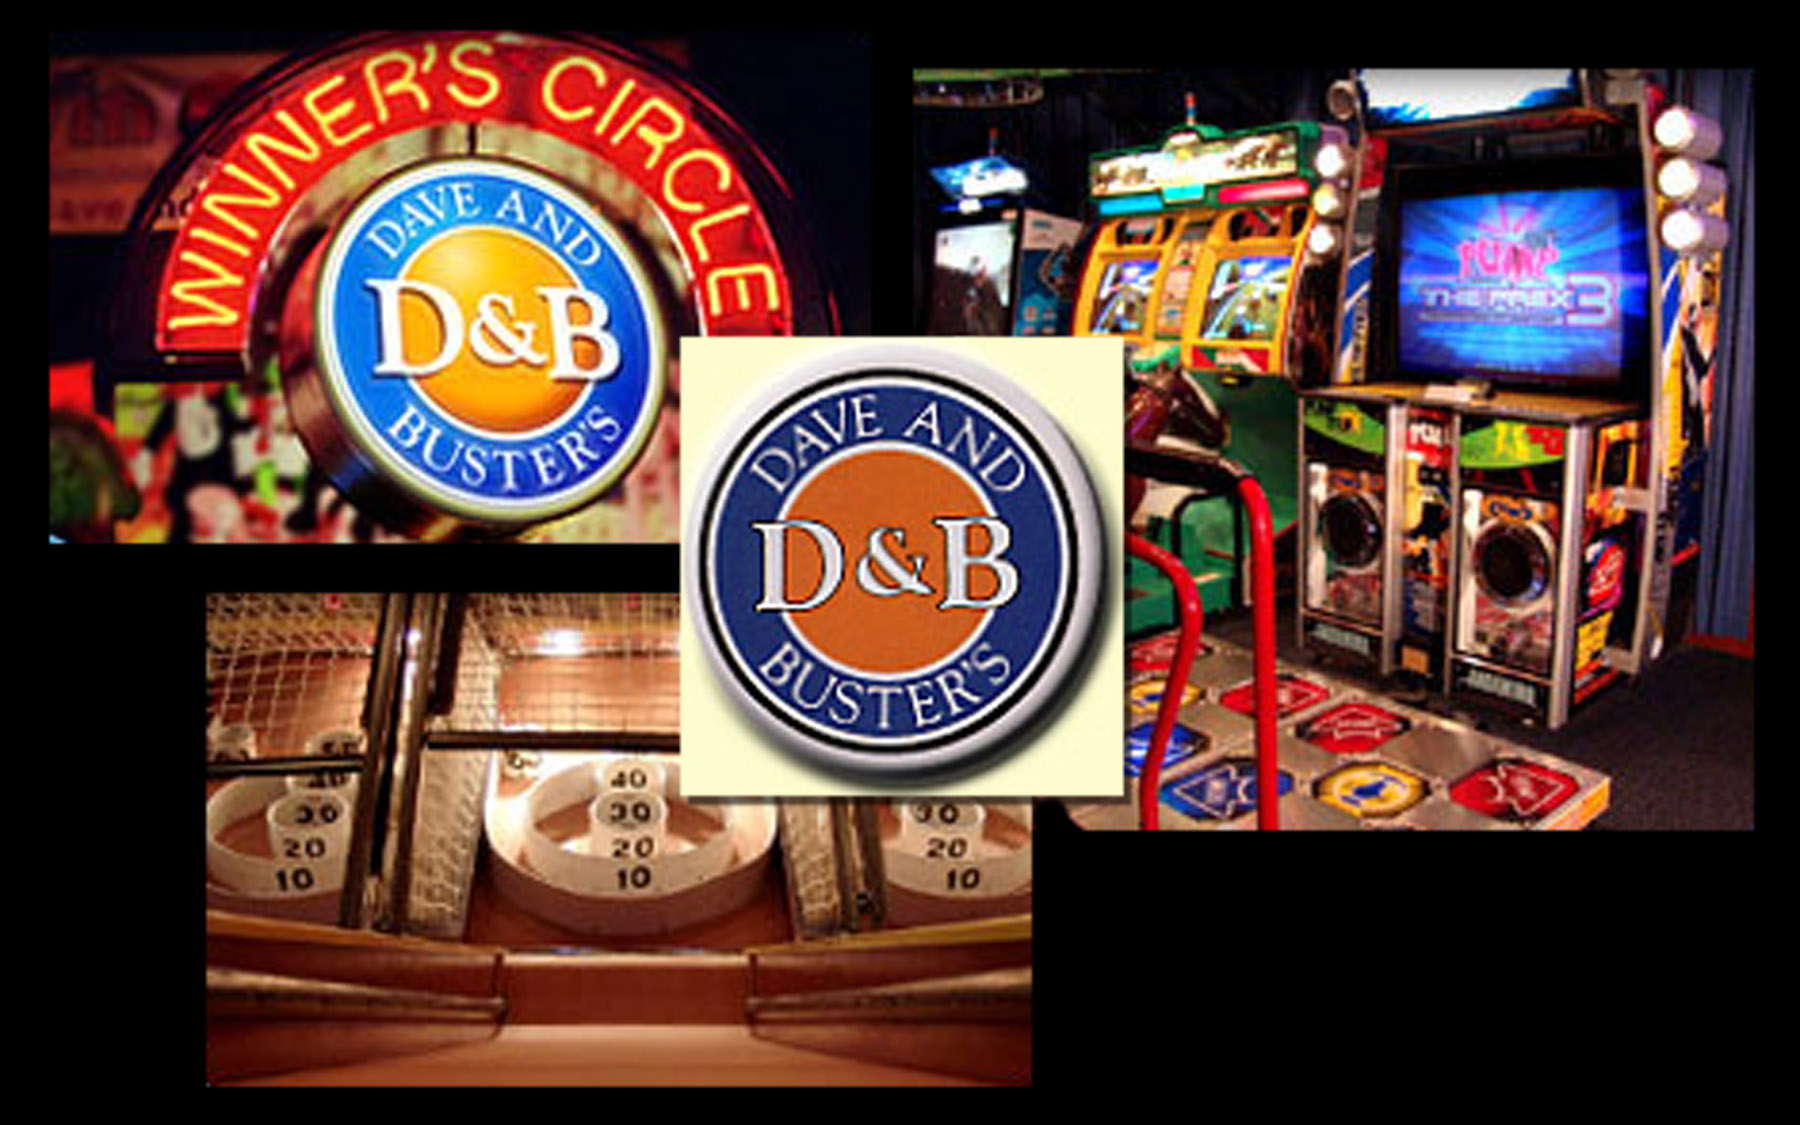 Dave & Buster's in Virginia Beach, VA